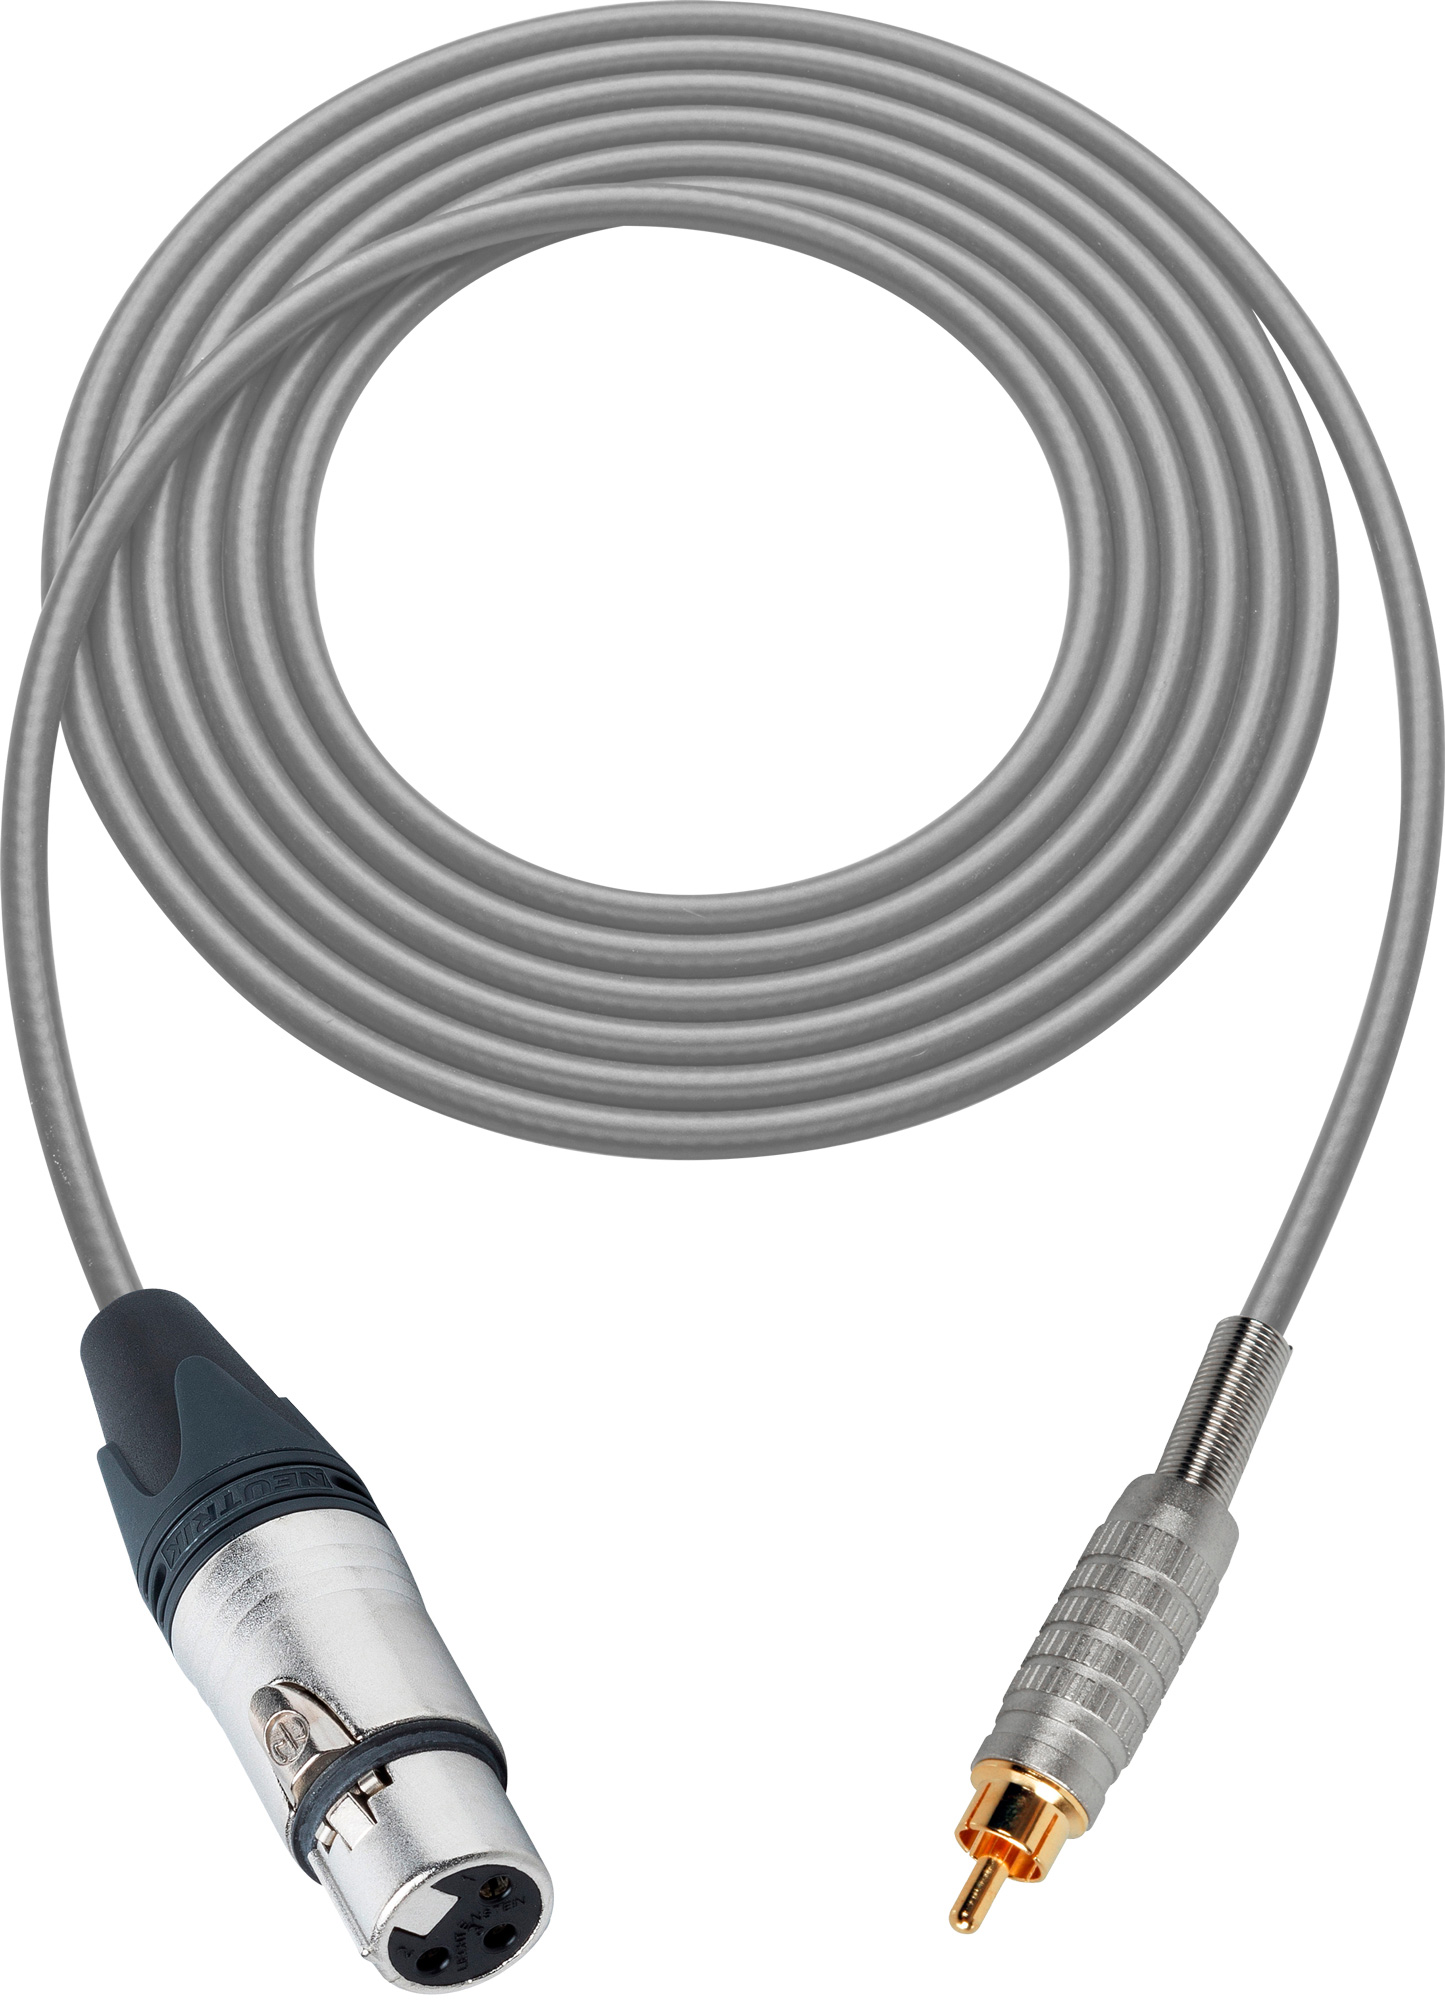 Canare Star Quad Cable Xlr Female To Rca Male 6 Foot Gray